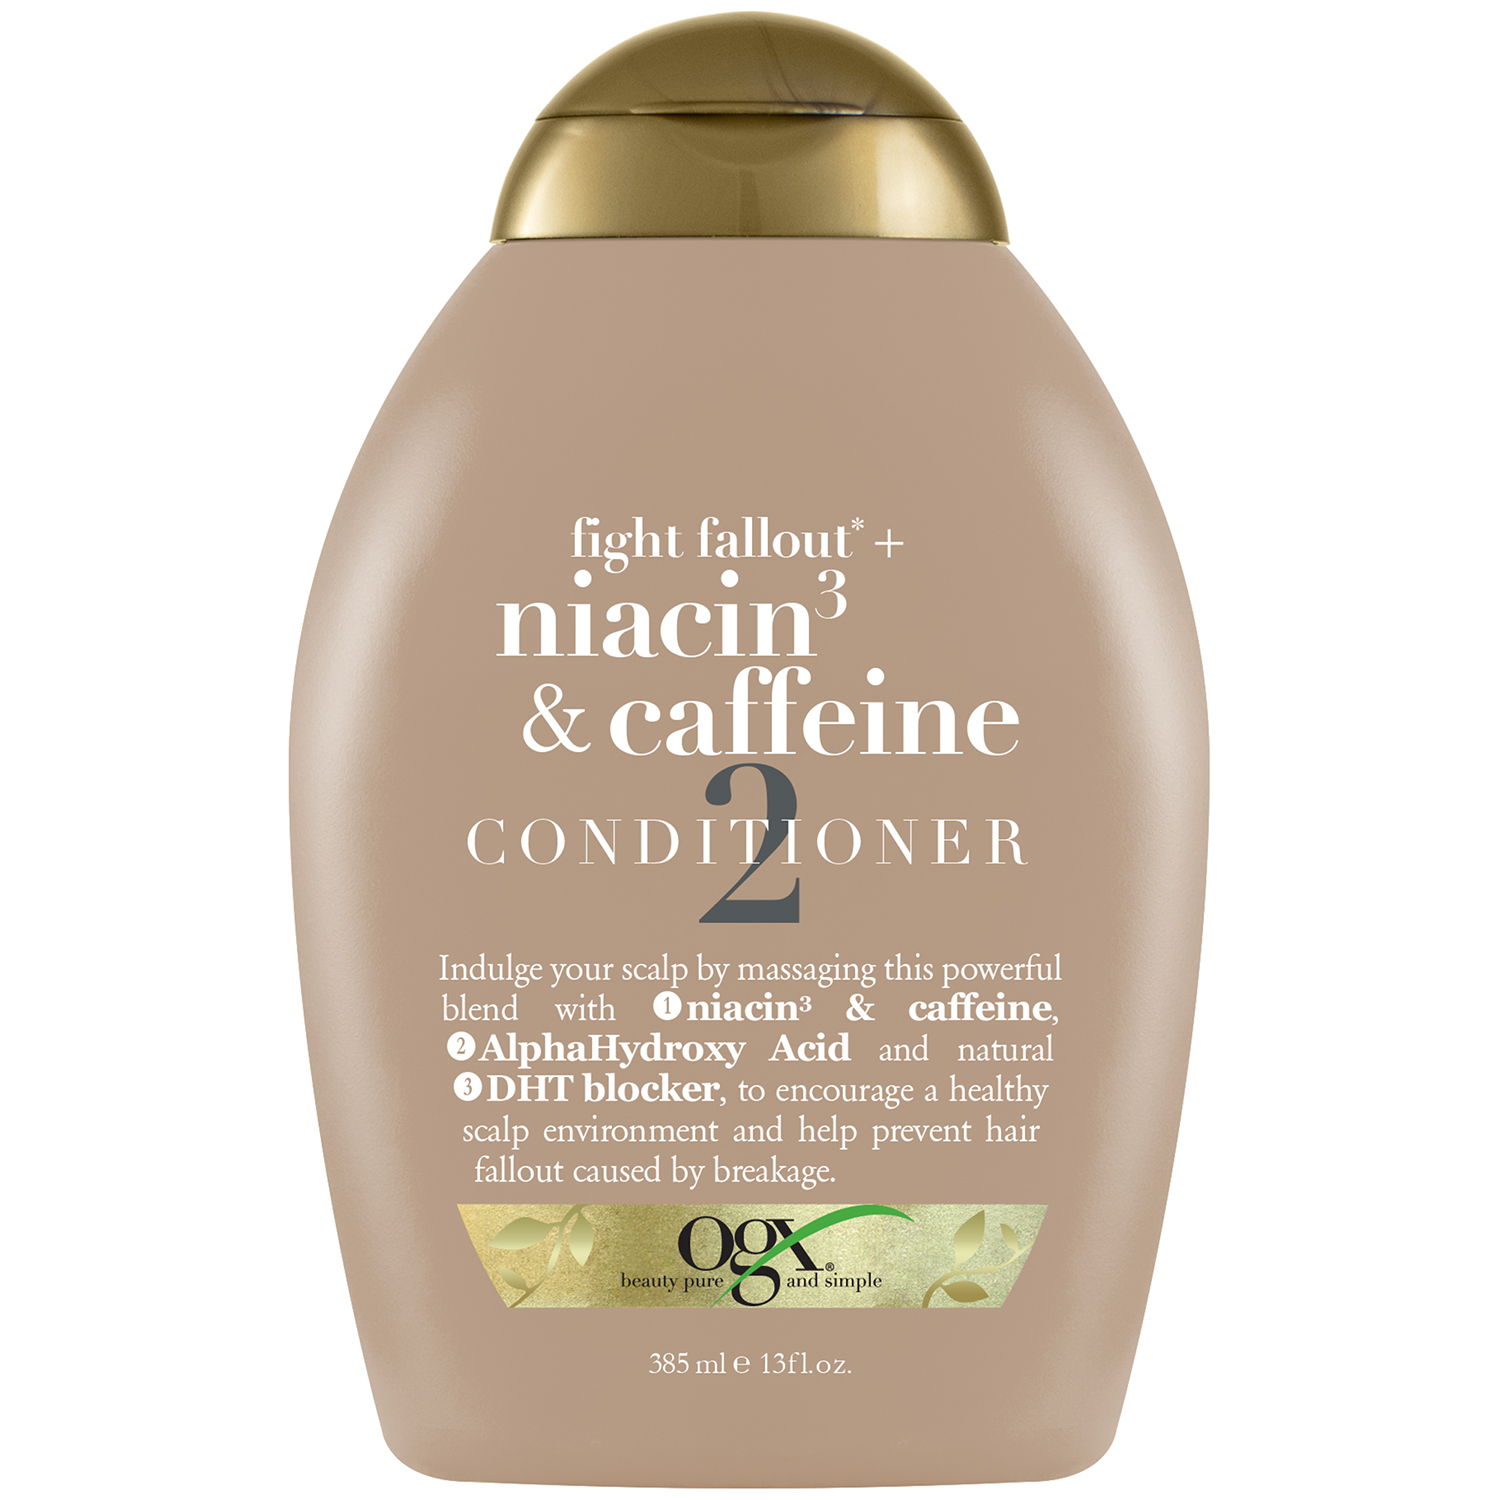 OGX Niacin3 & Caffeine Conditioner, 13.0 FL OZ